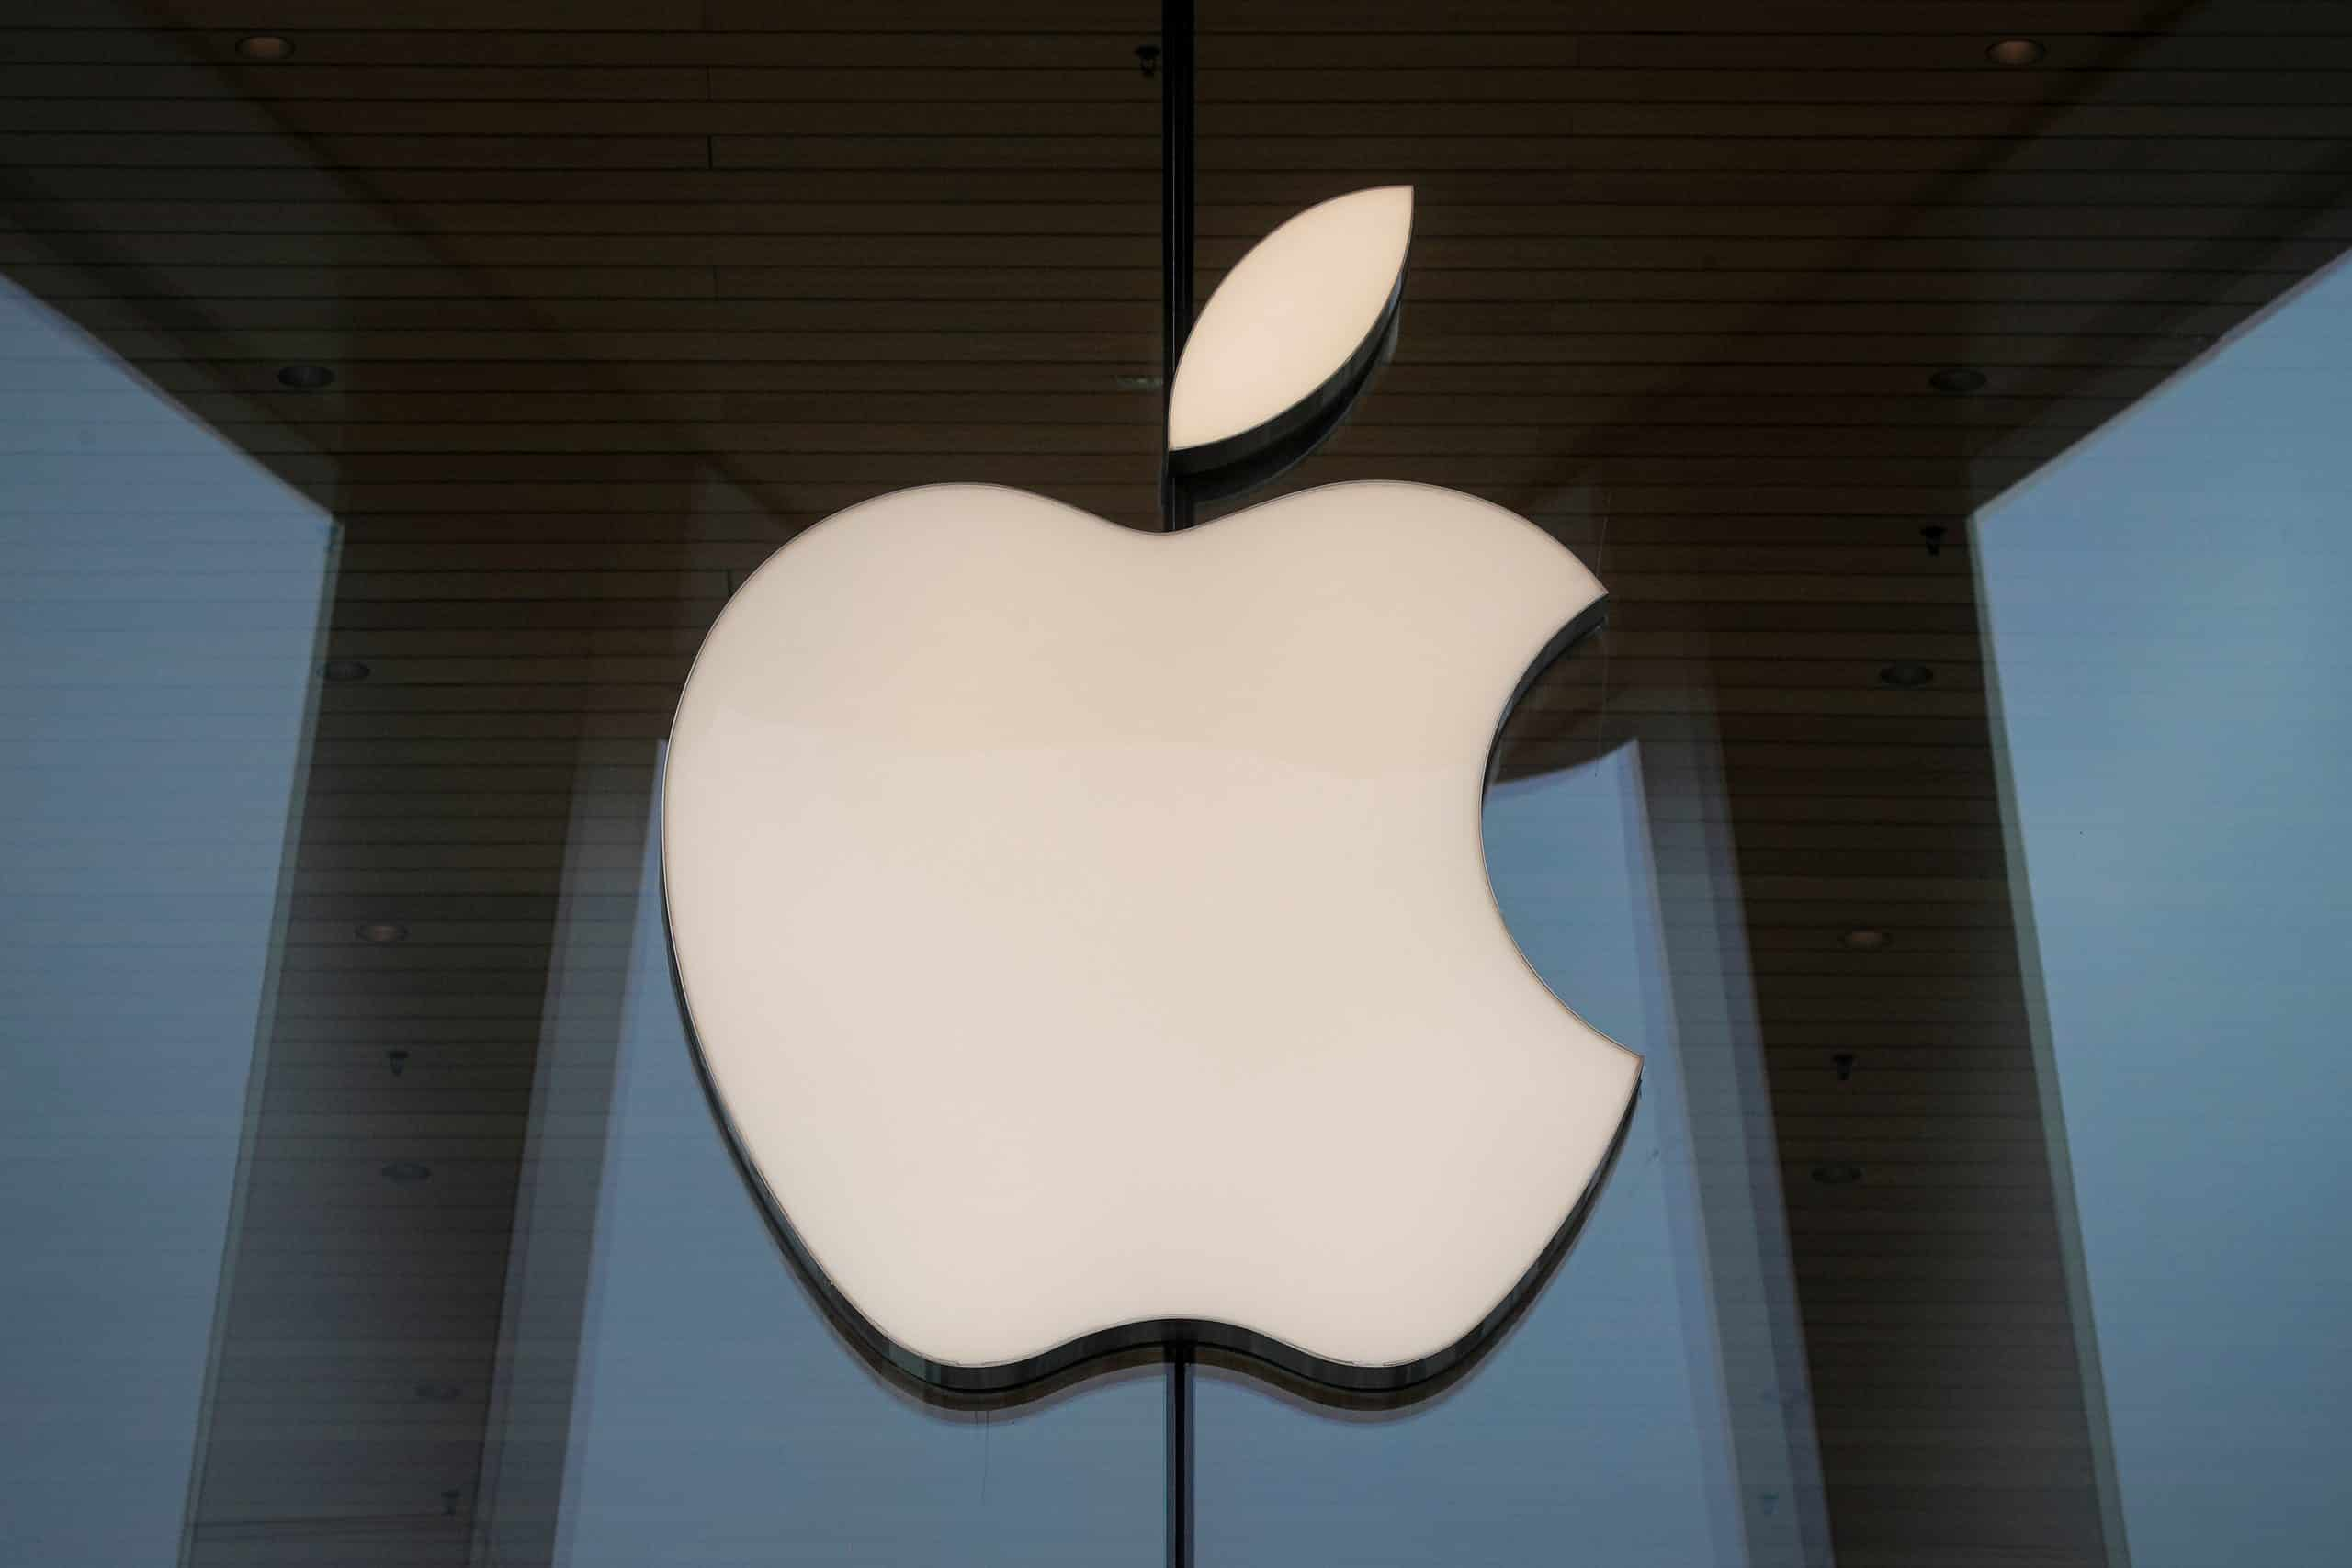 Apple publishes white paper defending App Store policies